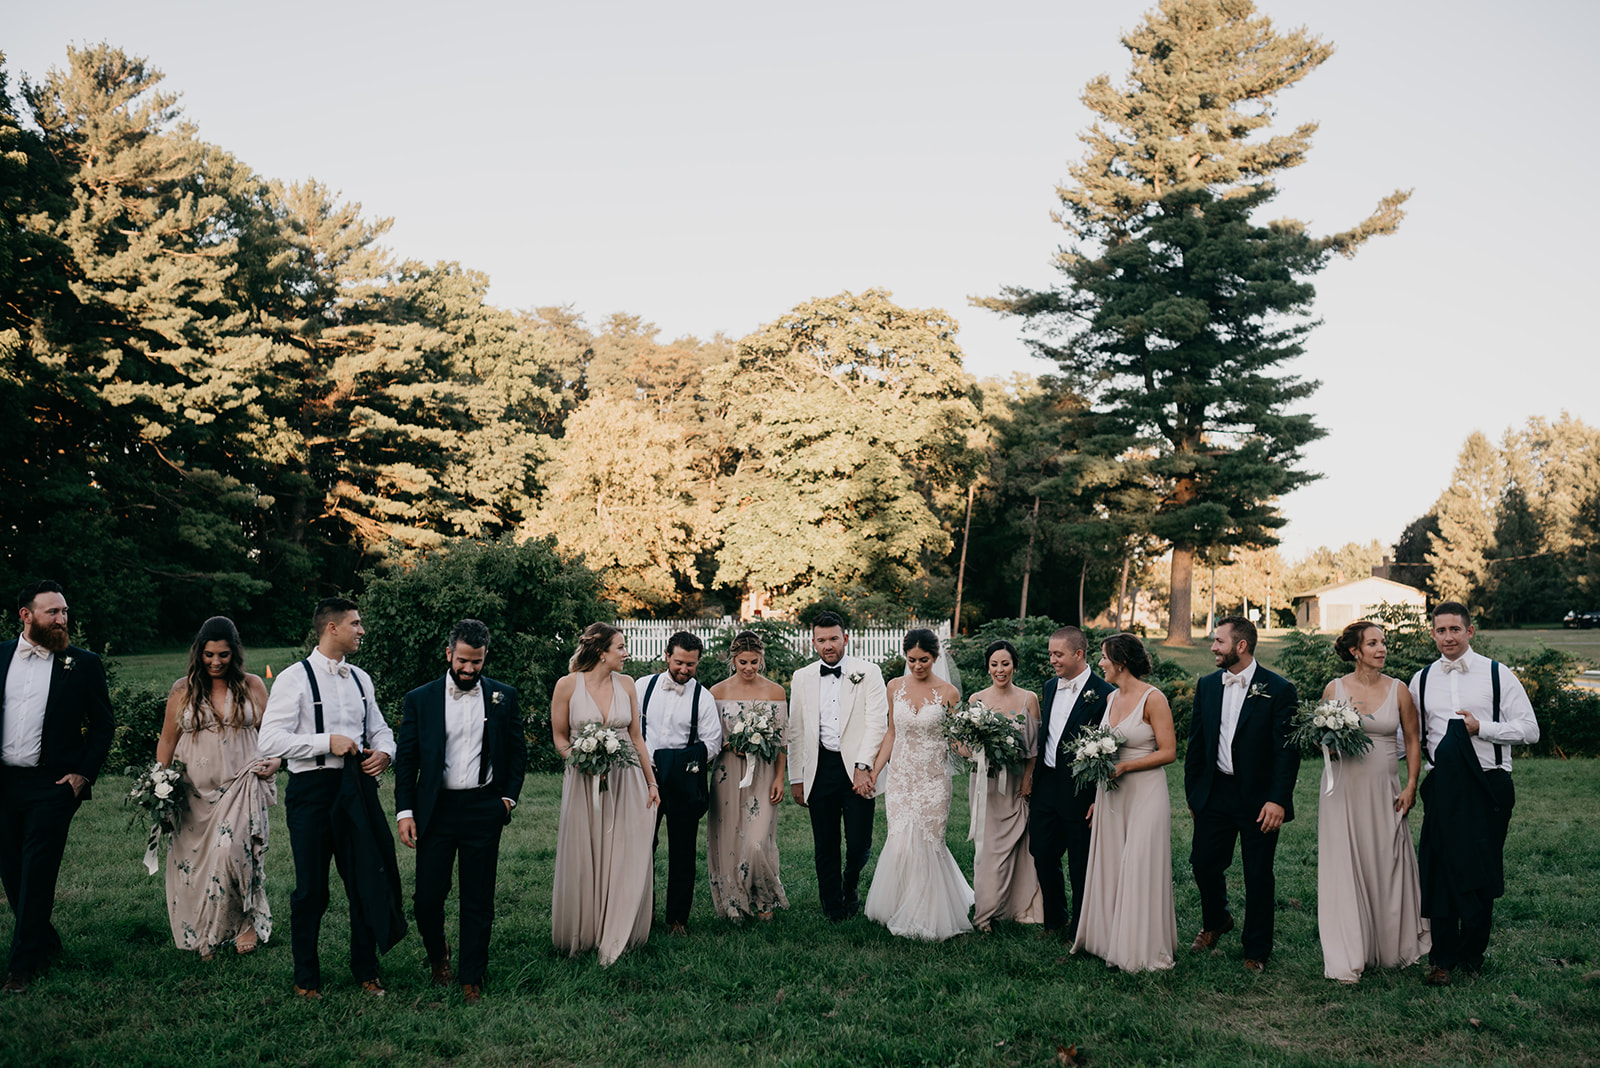 shaker_heritage_barn_wedding_030.jpg